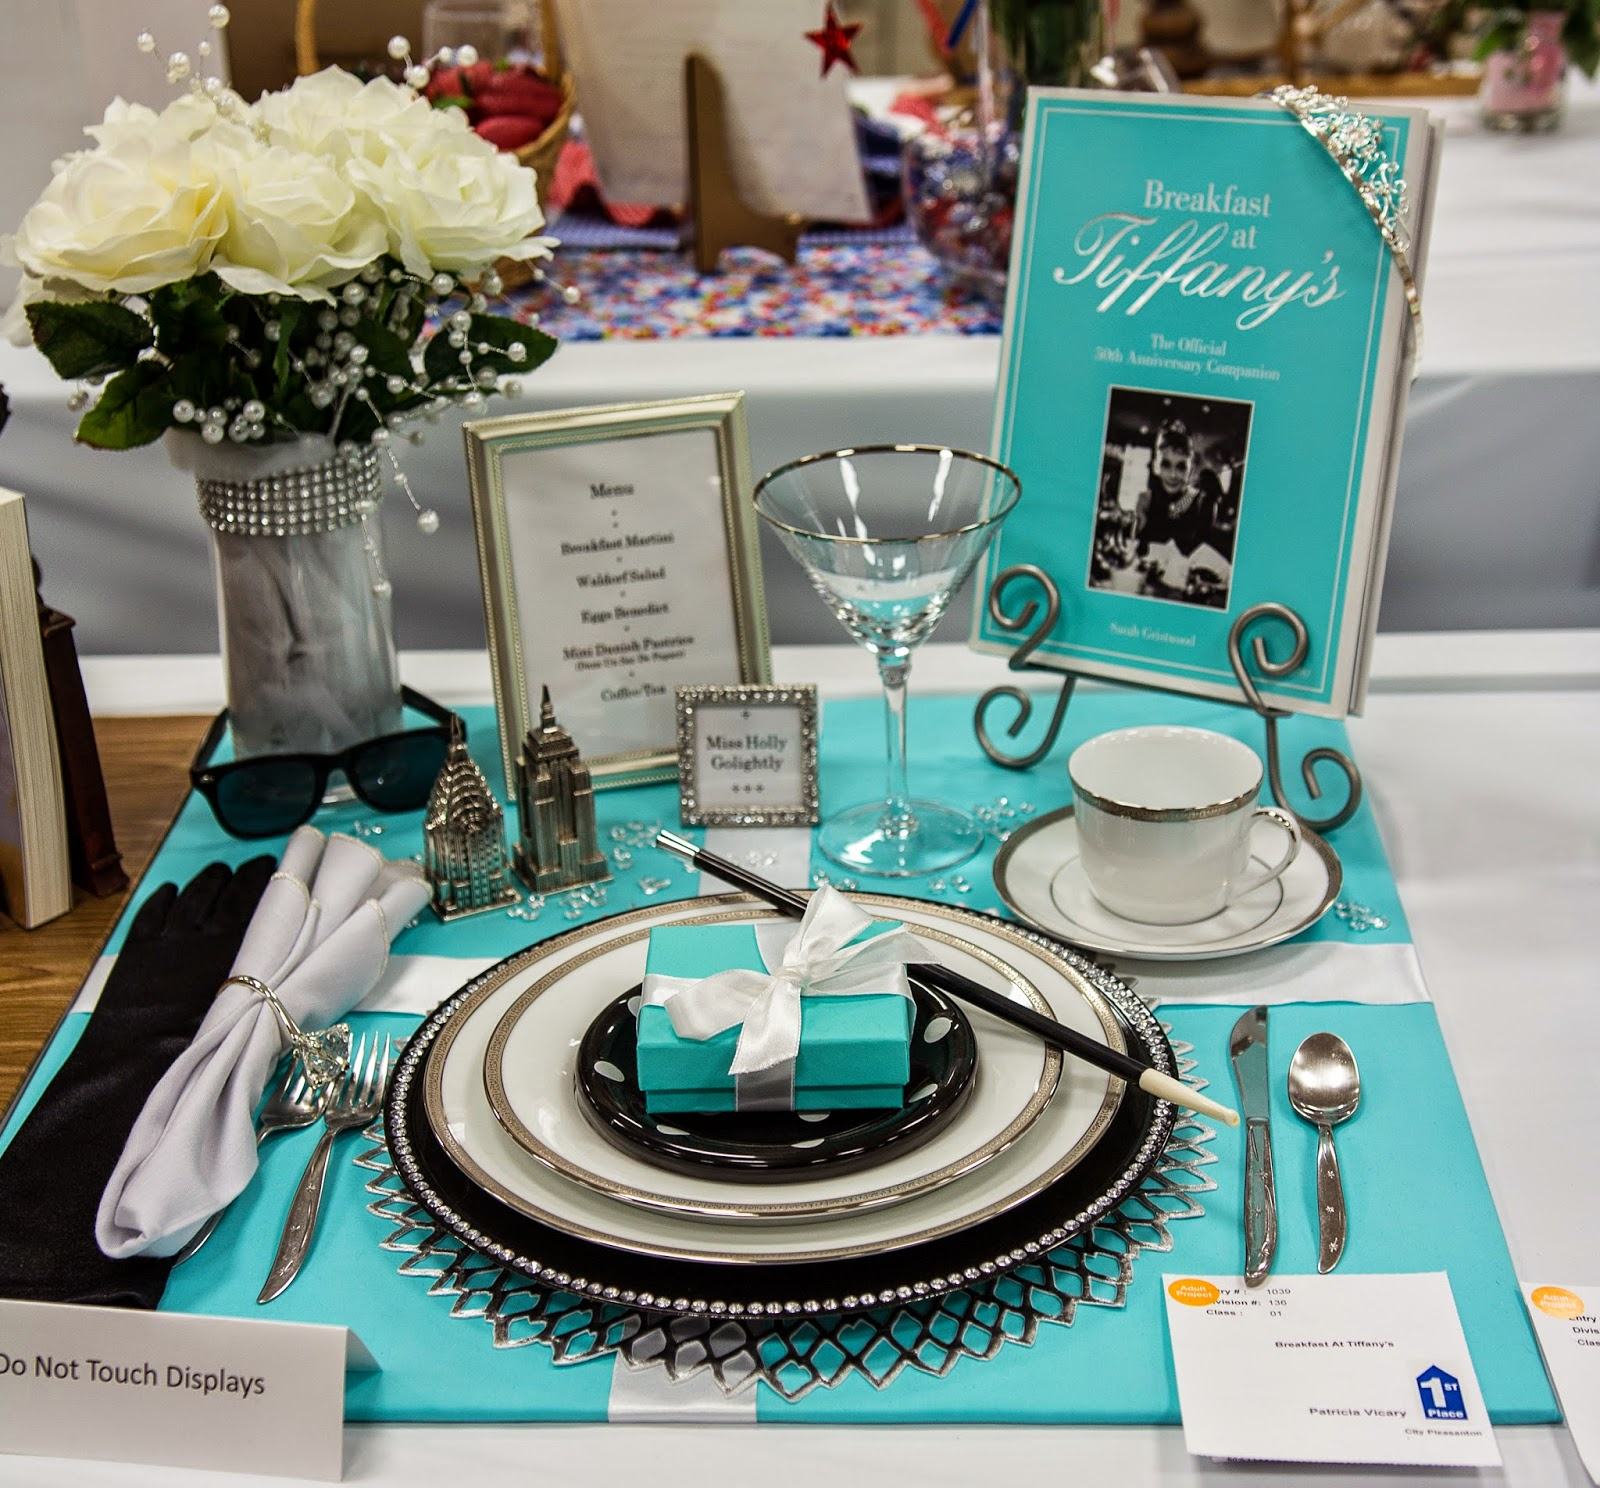 The Fun Of Outdoor Movies Movie Themed Place Setting For